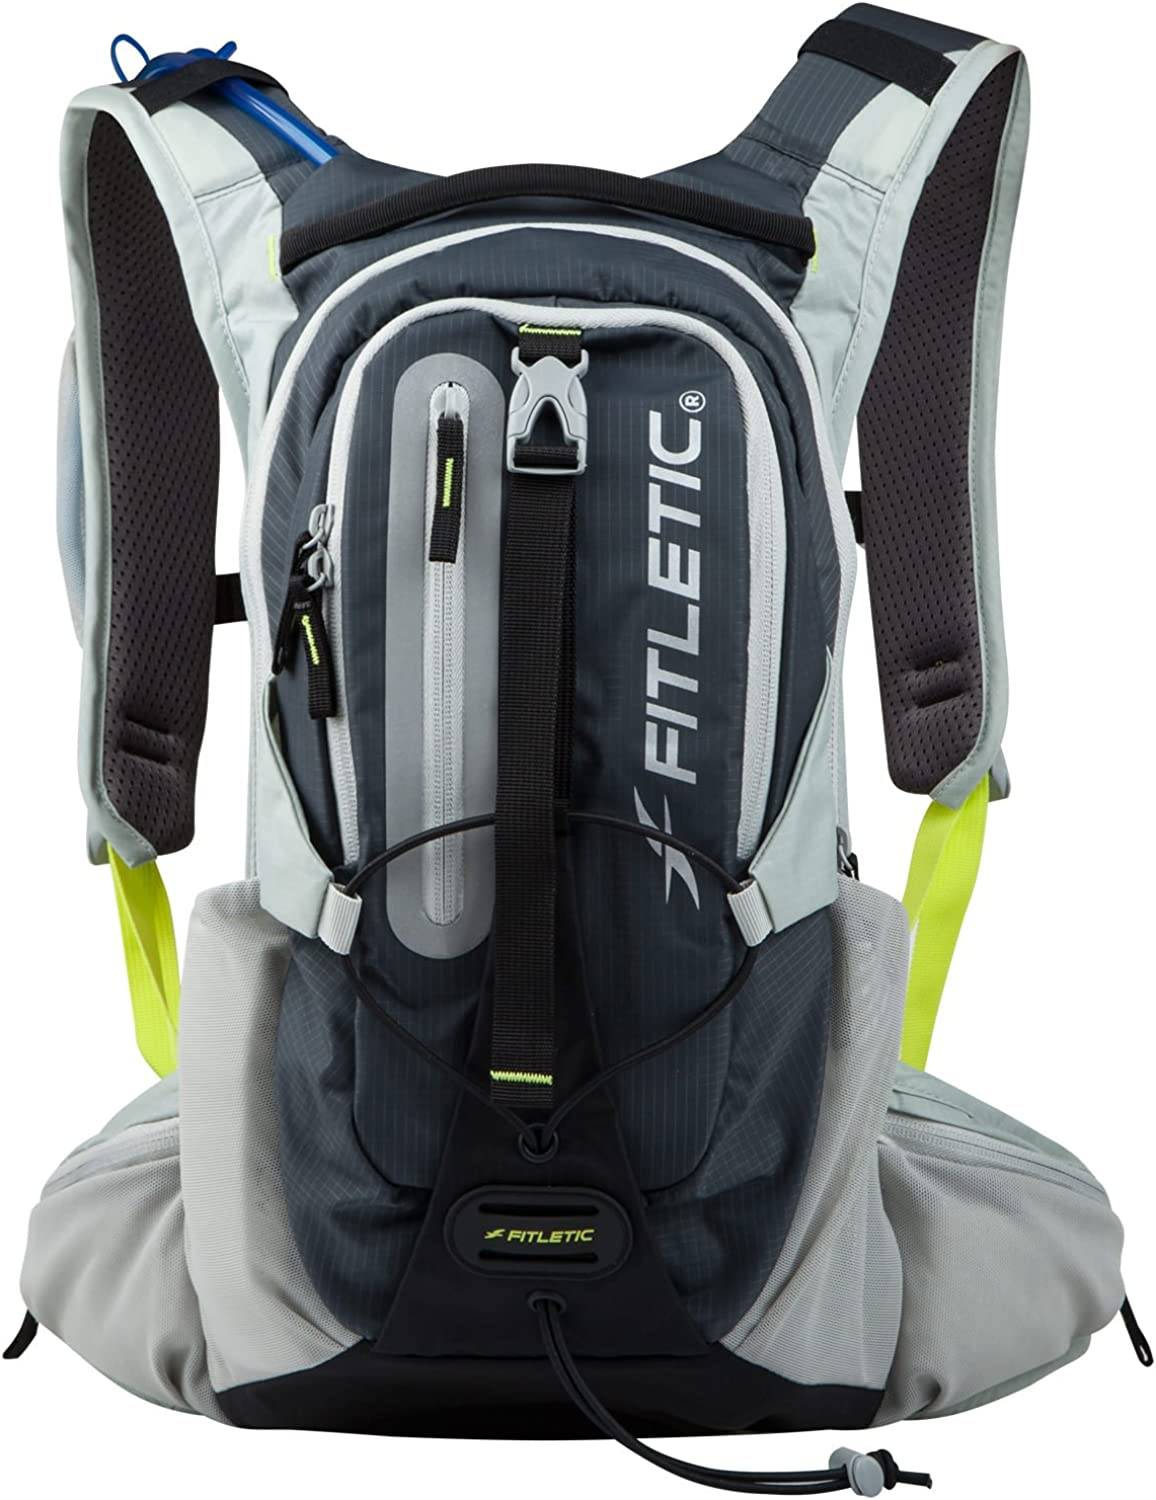 Fitletic Hydration Backpack 11L Pack for Running, Trail, Hiking, Cycling, Mountain Biking, Ultra Marathon, or Travel Journey JRNBL